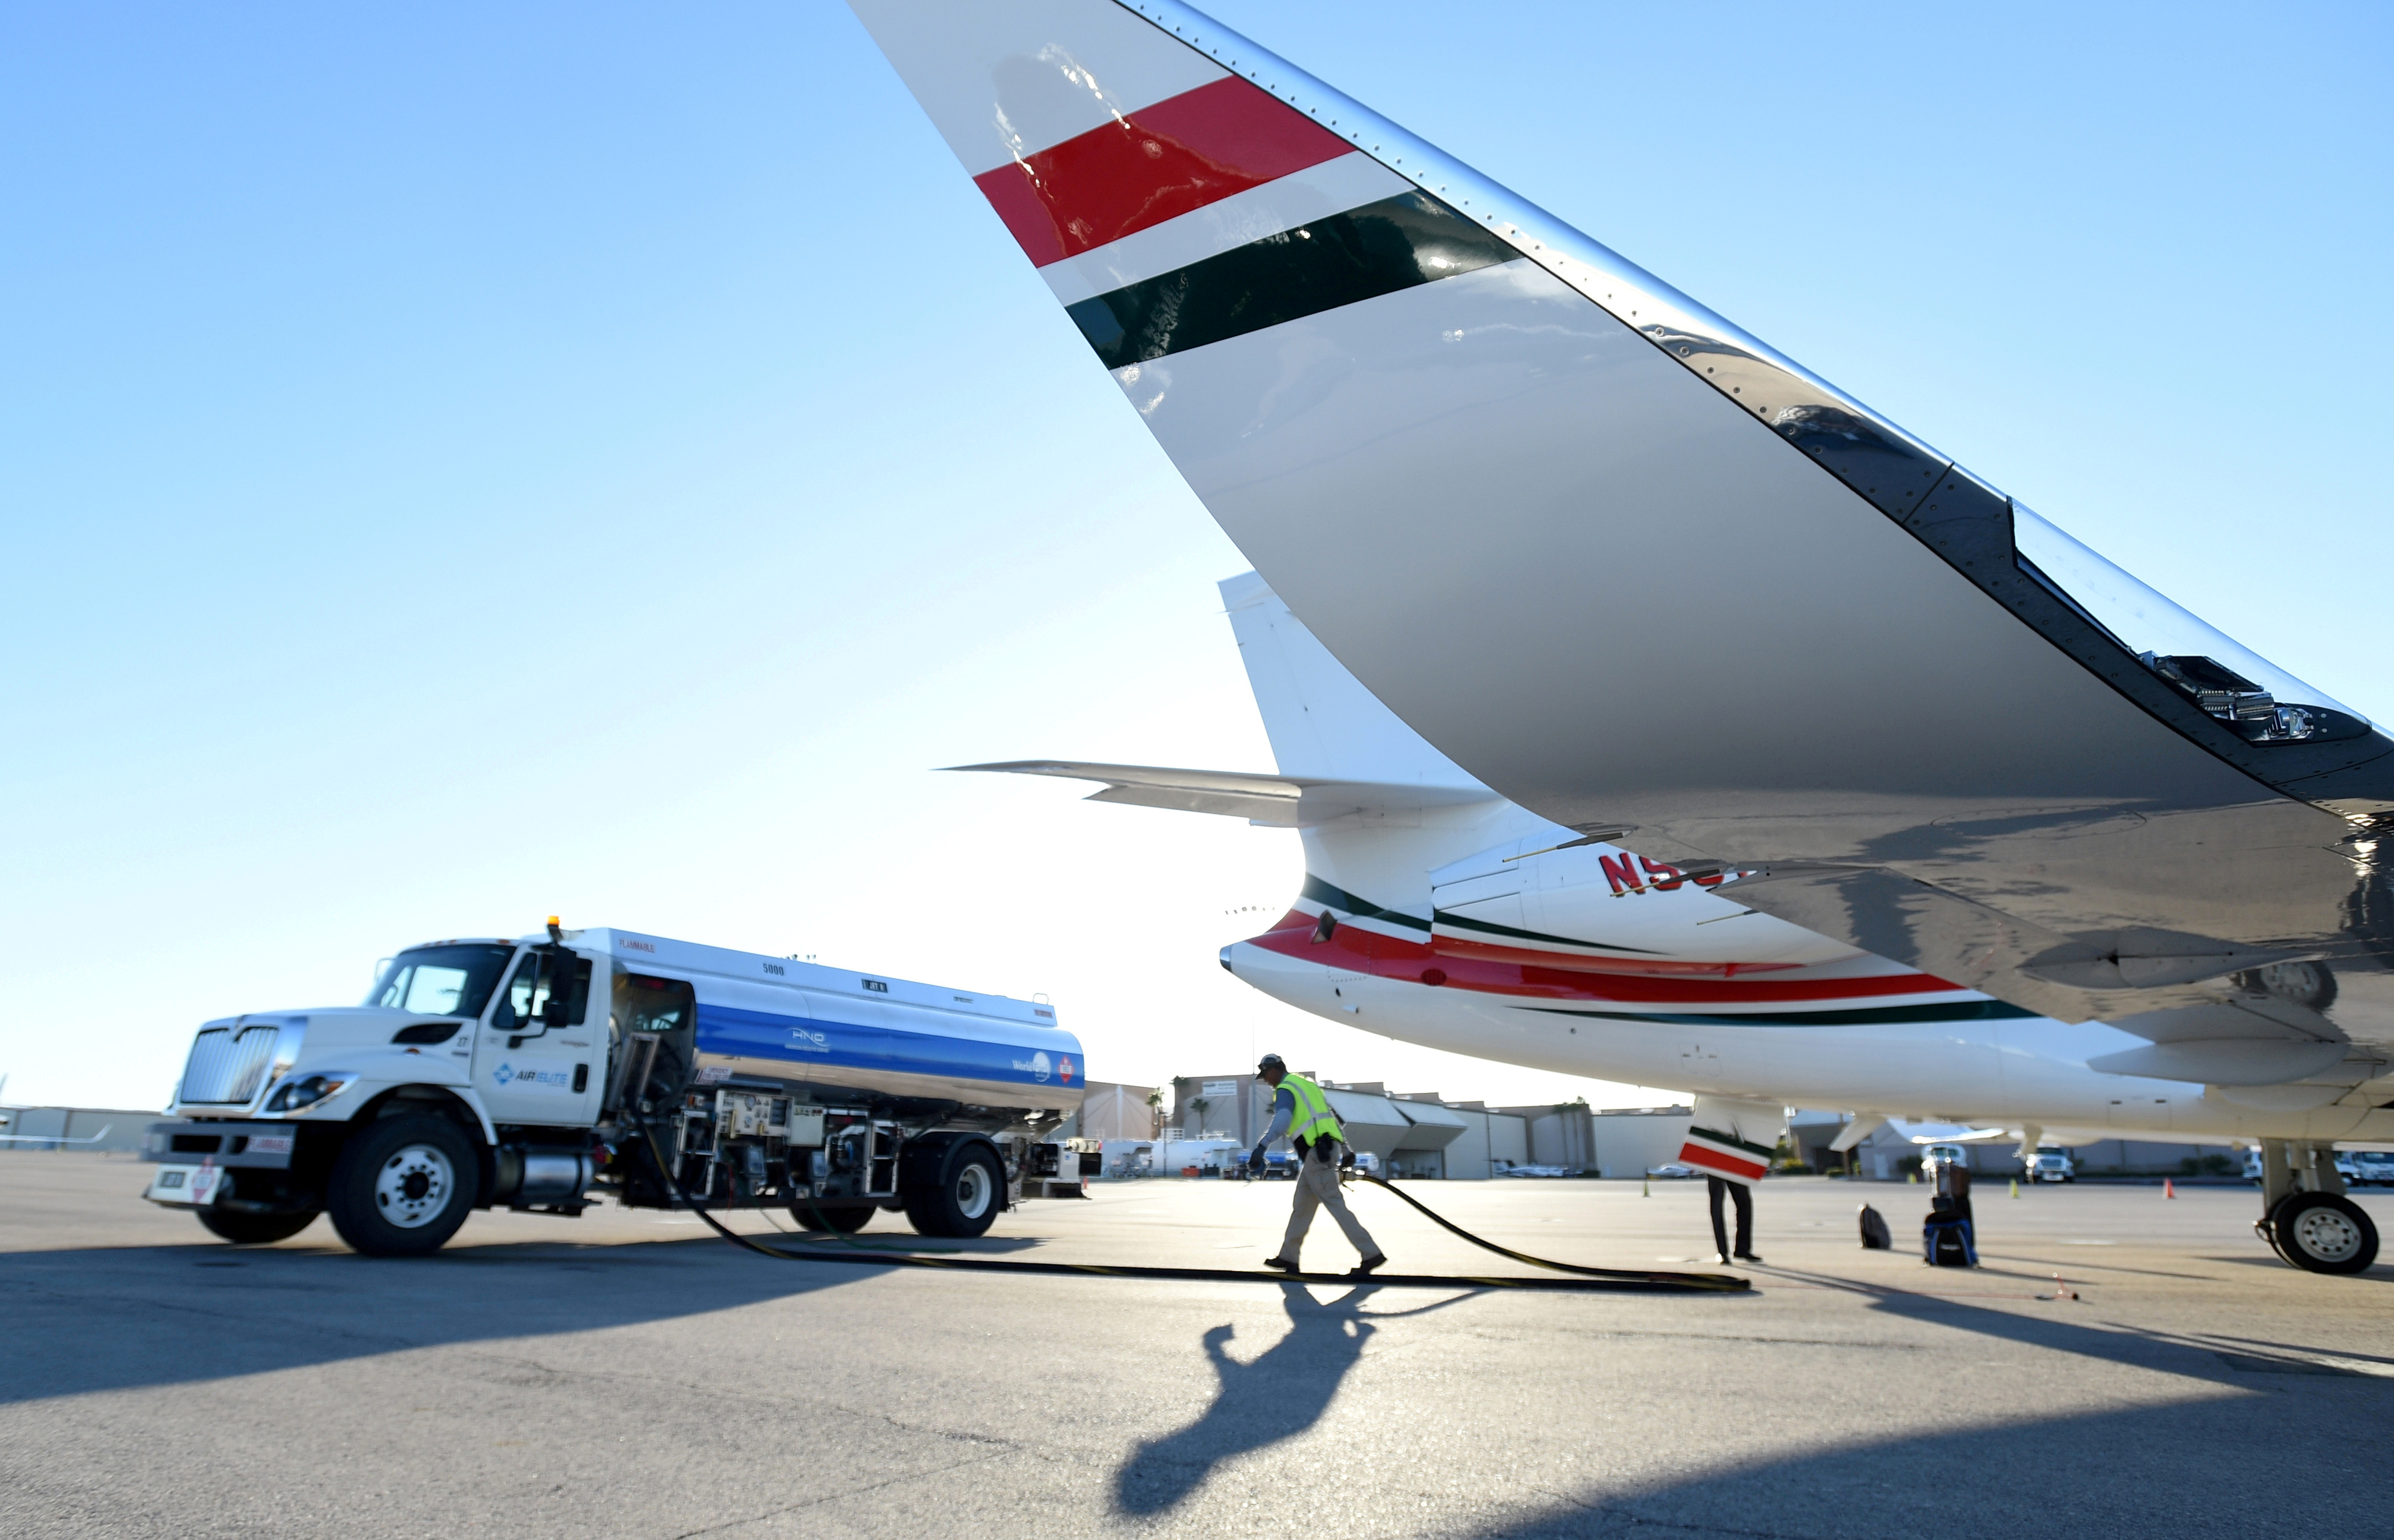 File photo: A business jet is refueled using Jet A fuel at the Henderson Executive Airport during the National Business Aviation Association (NBAA) exhibition in Las Vegas, Nevada, U.S. October 21, 2019.  REUTERS/David Becker